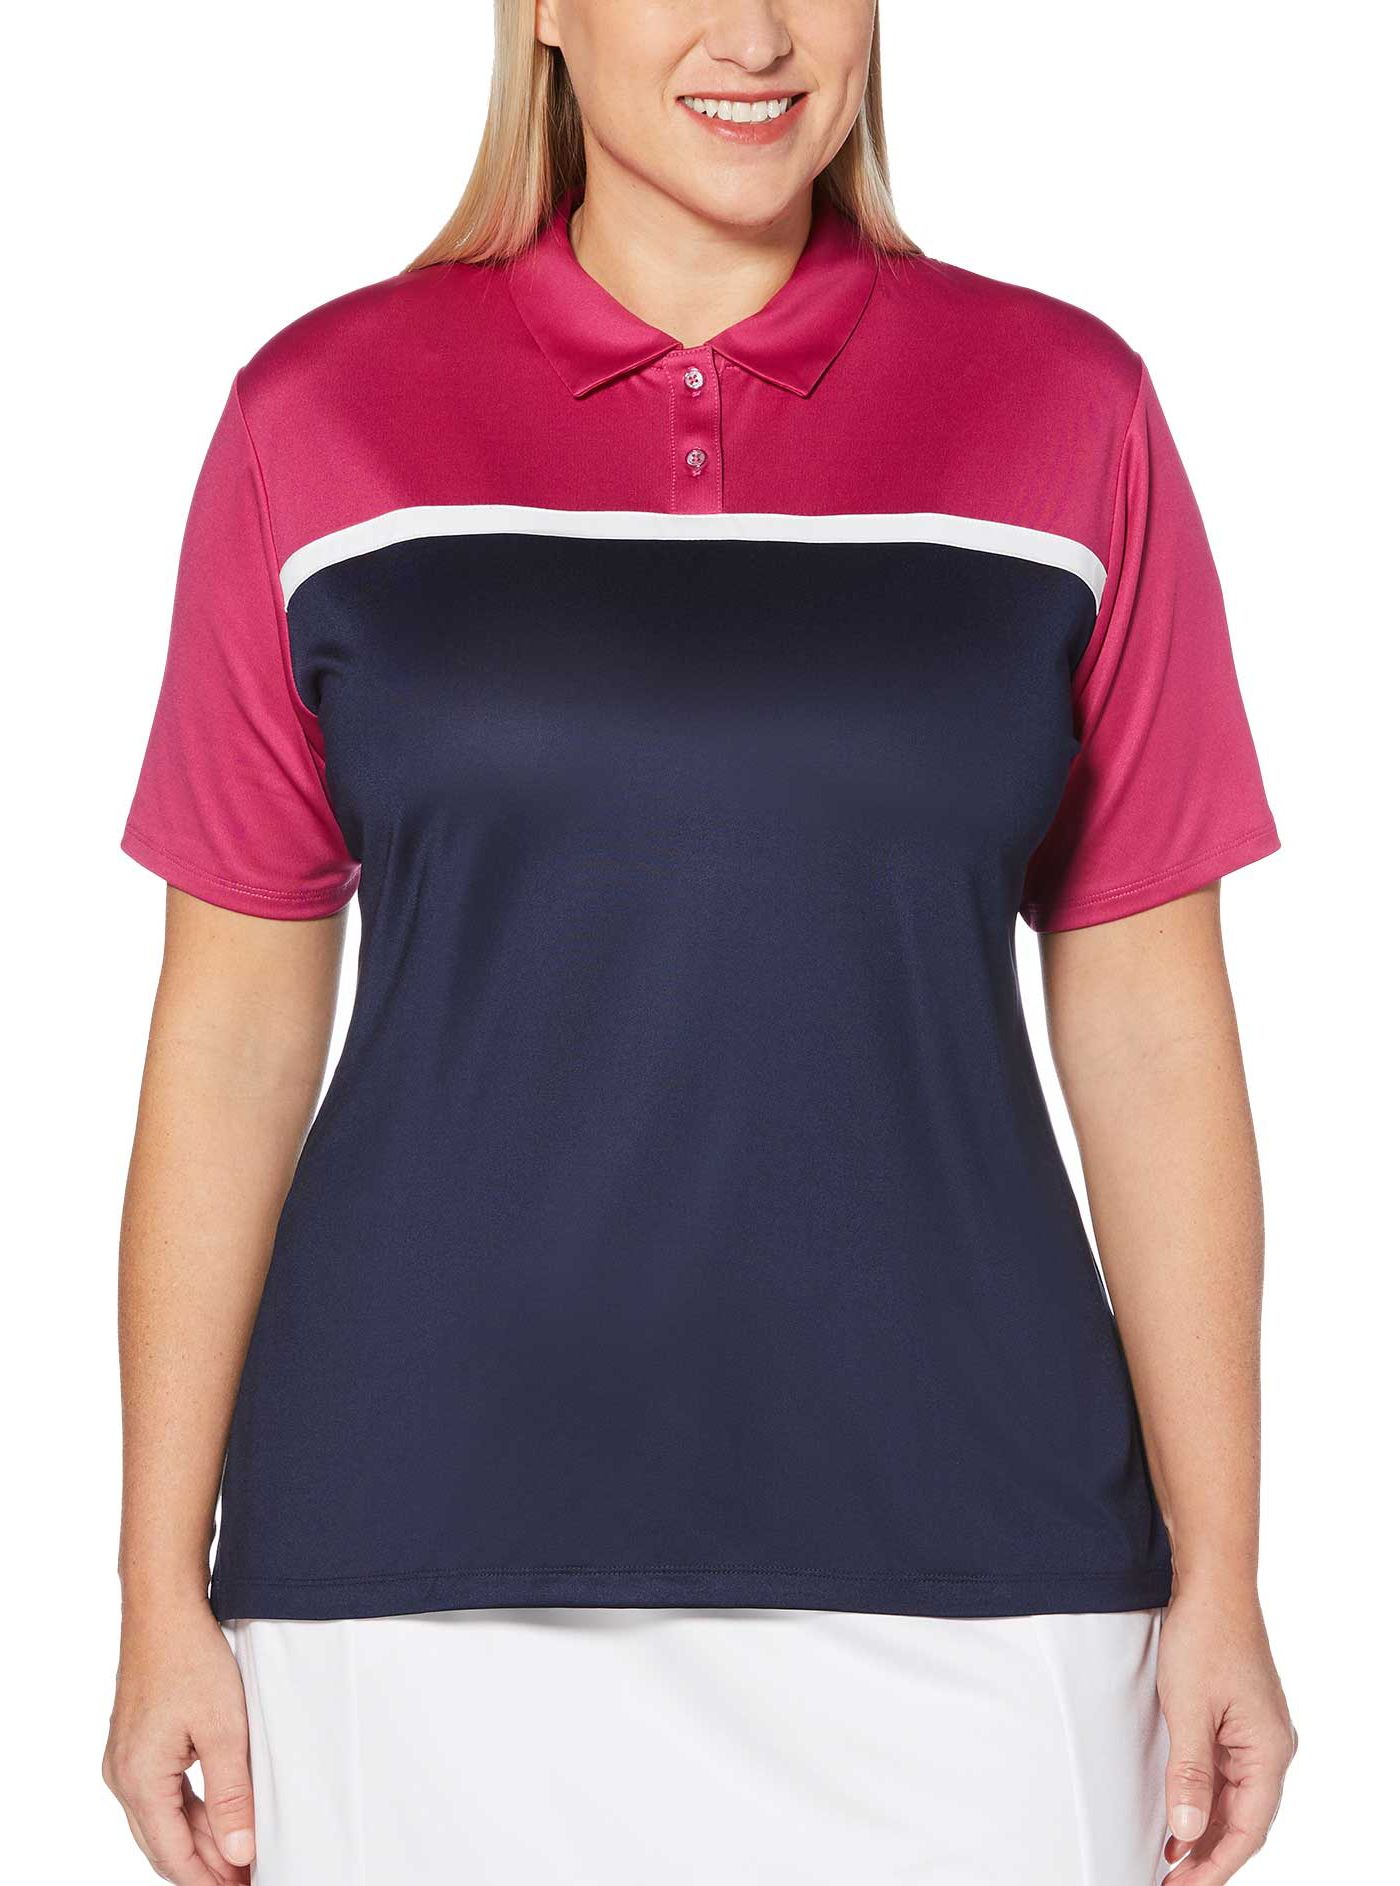 Callaway Women's Color Block Golf Polo - Extended Sizes